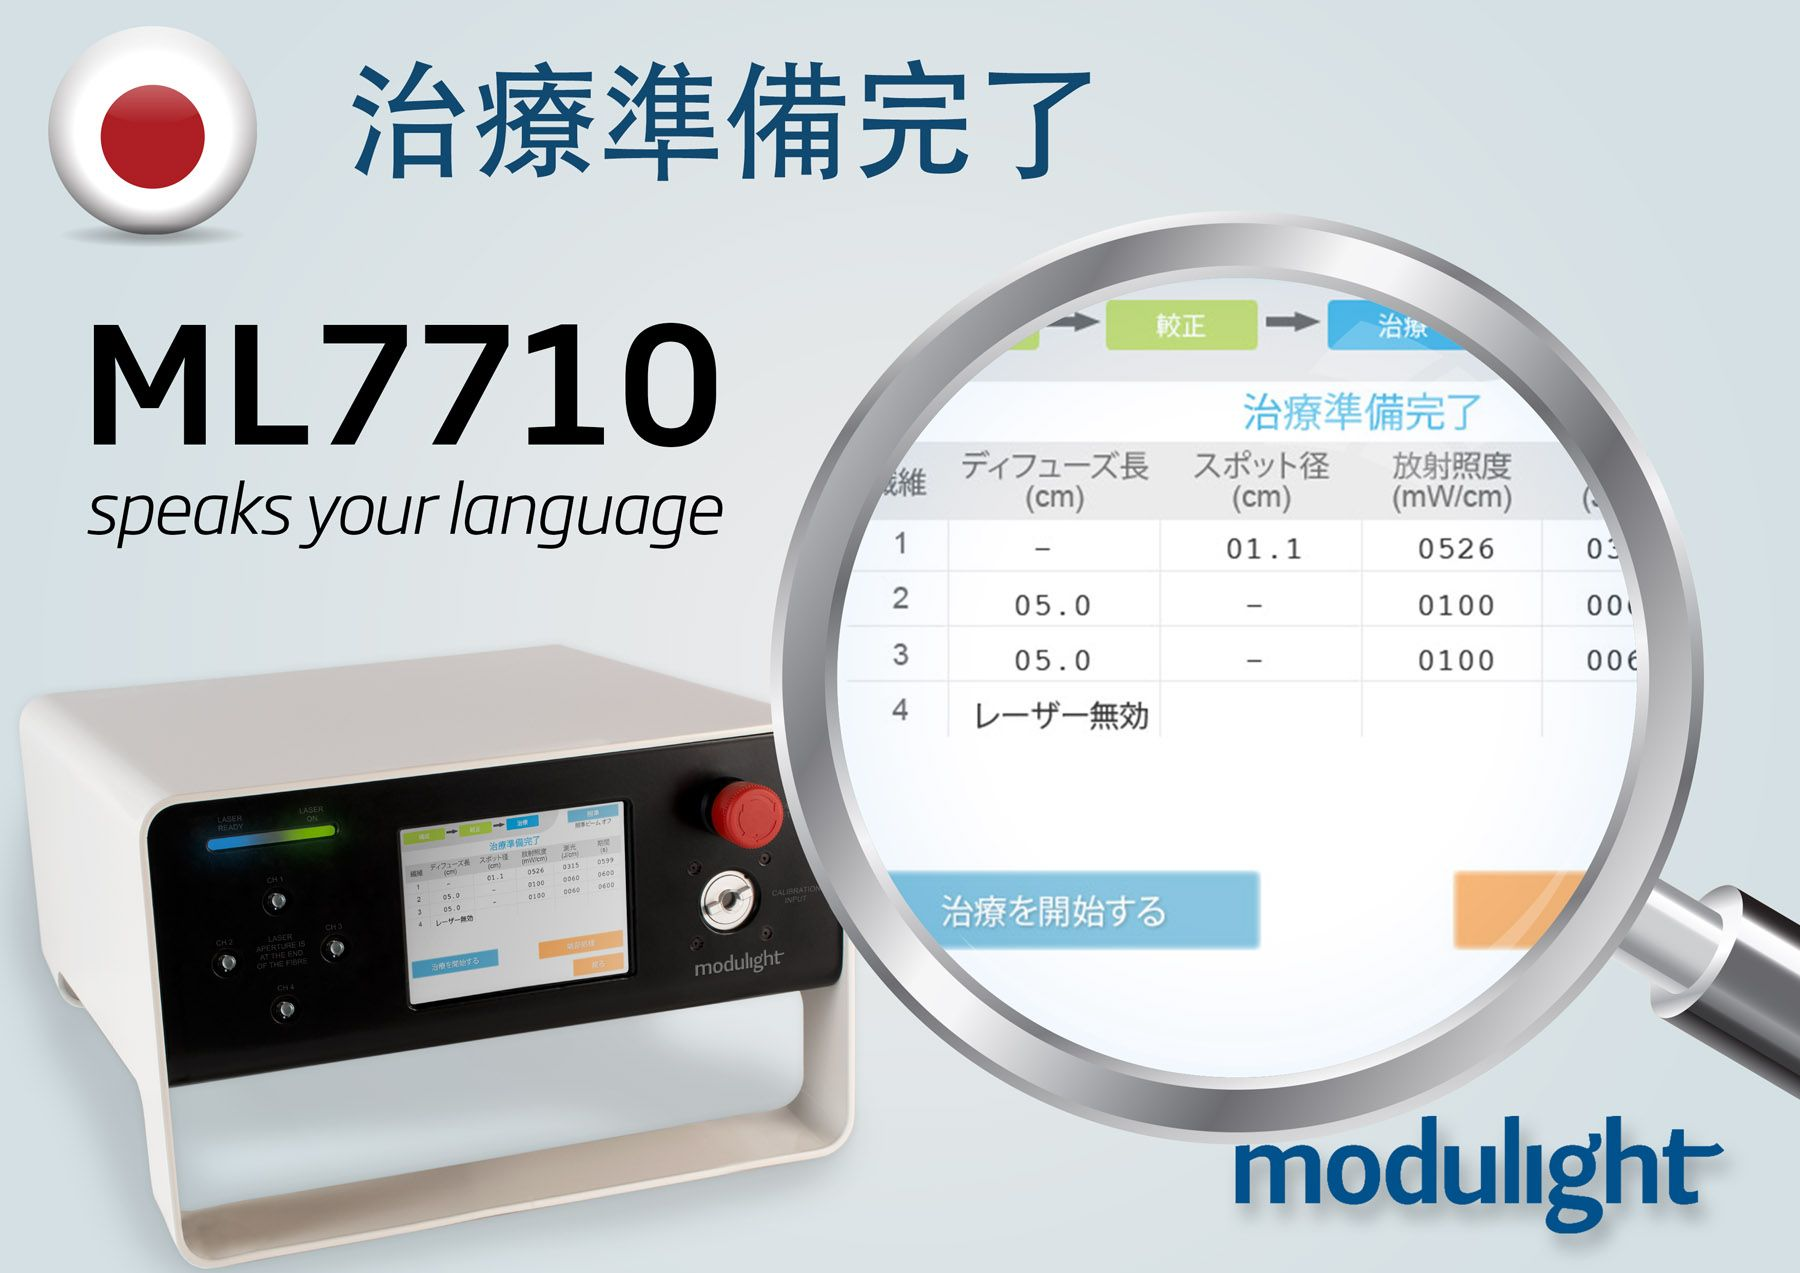 User interface now available in Japanese!